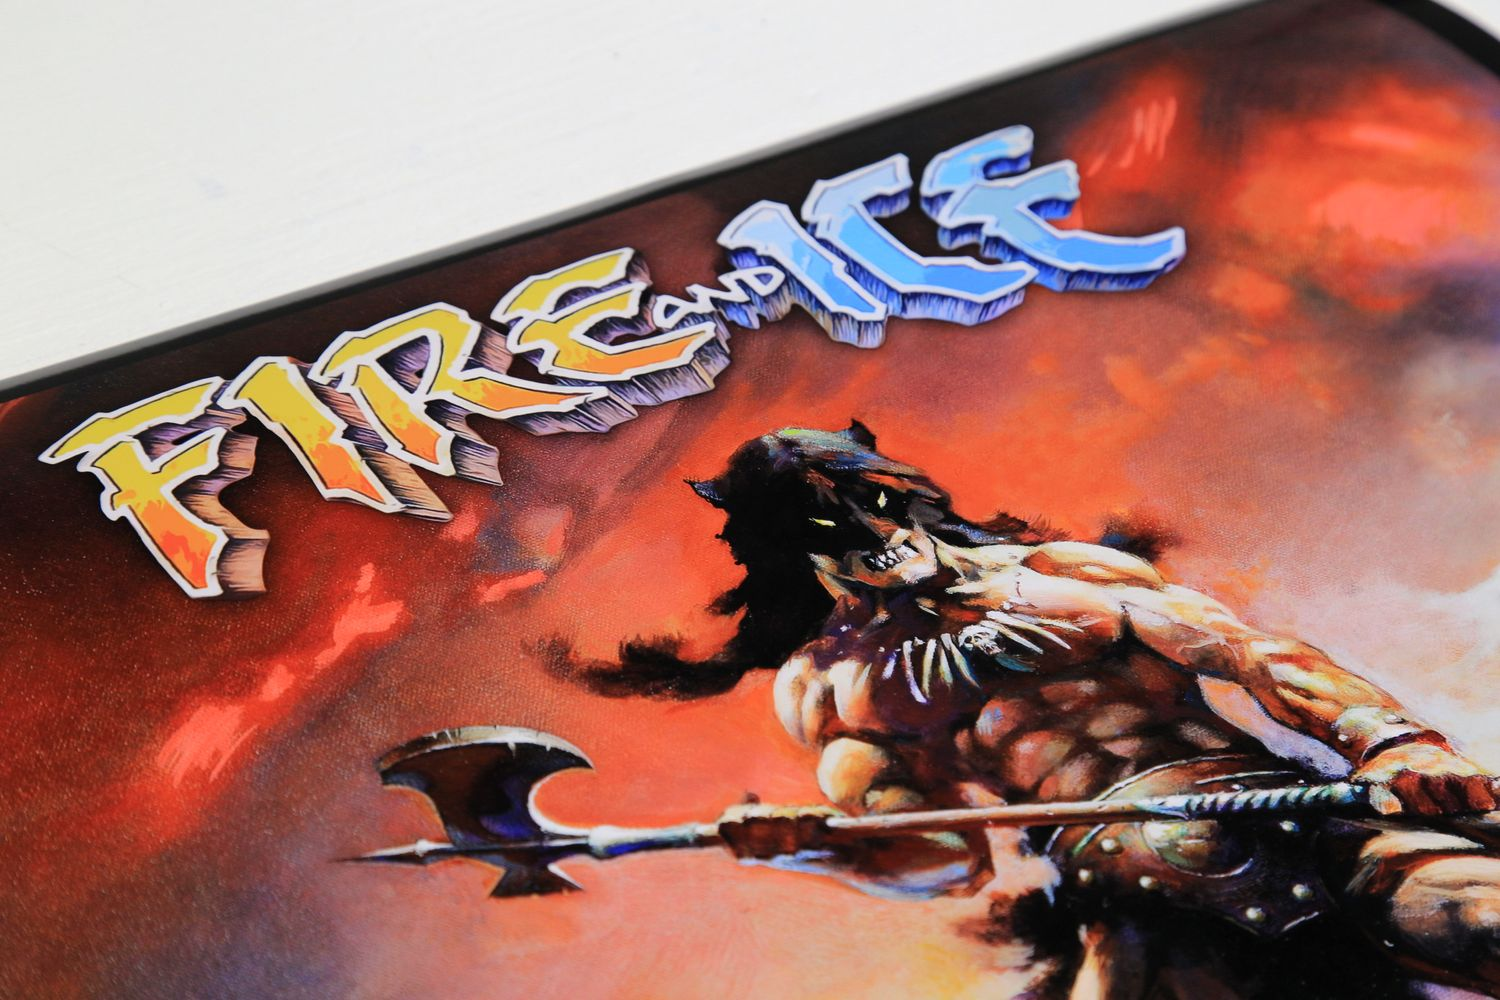 Frazetta 'Fire and Ice' Metallic Movie Poster Print /50